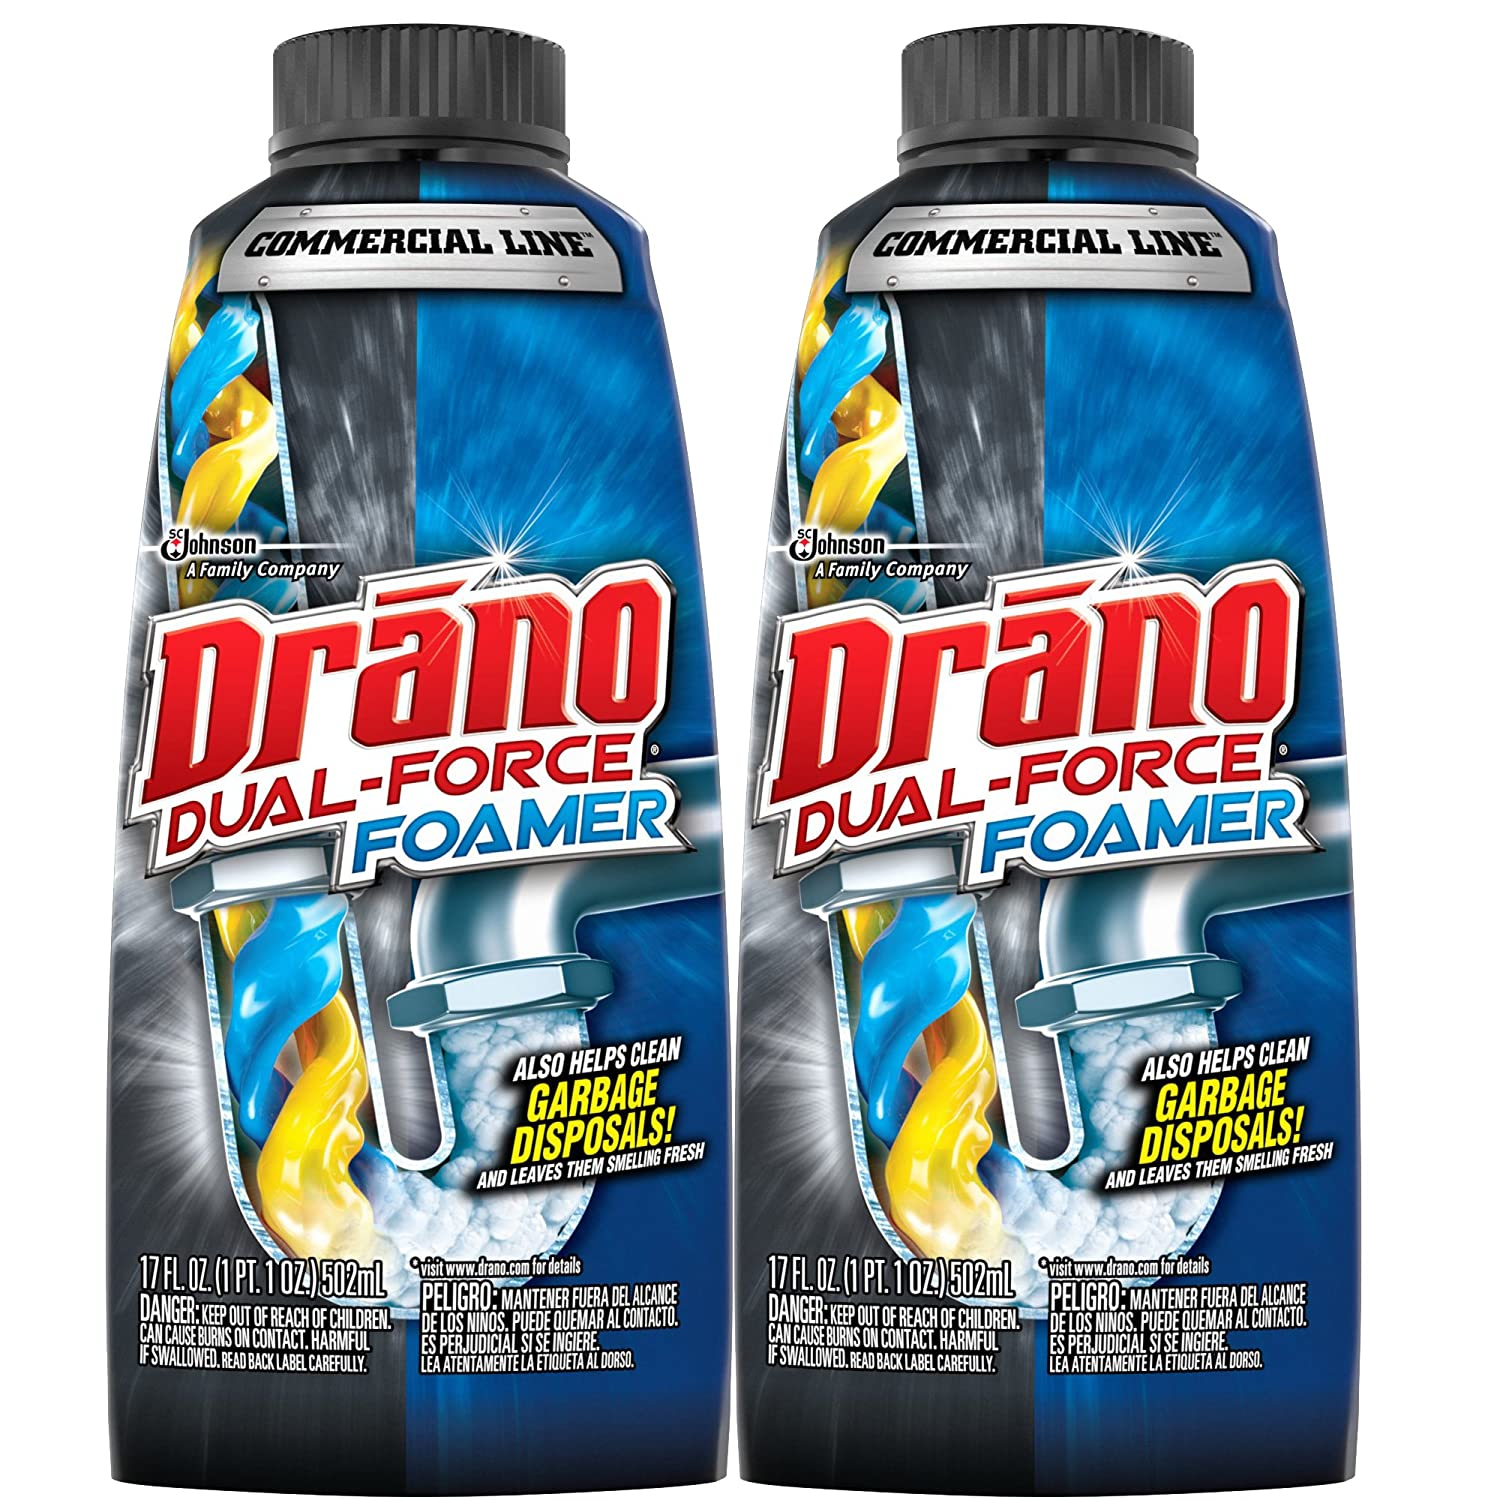 Amazon.com: Drano Commercial Line Dual-Force Foamer 17 Ounces, 2 ...